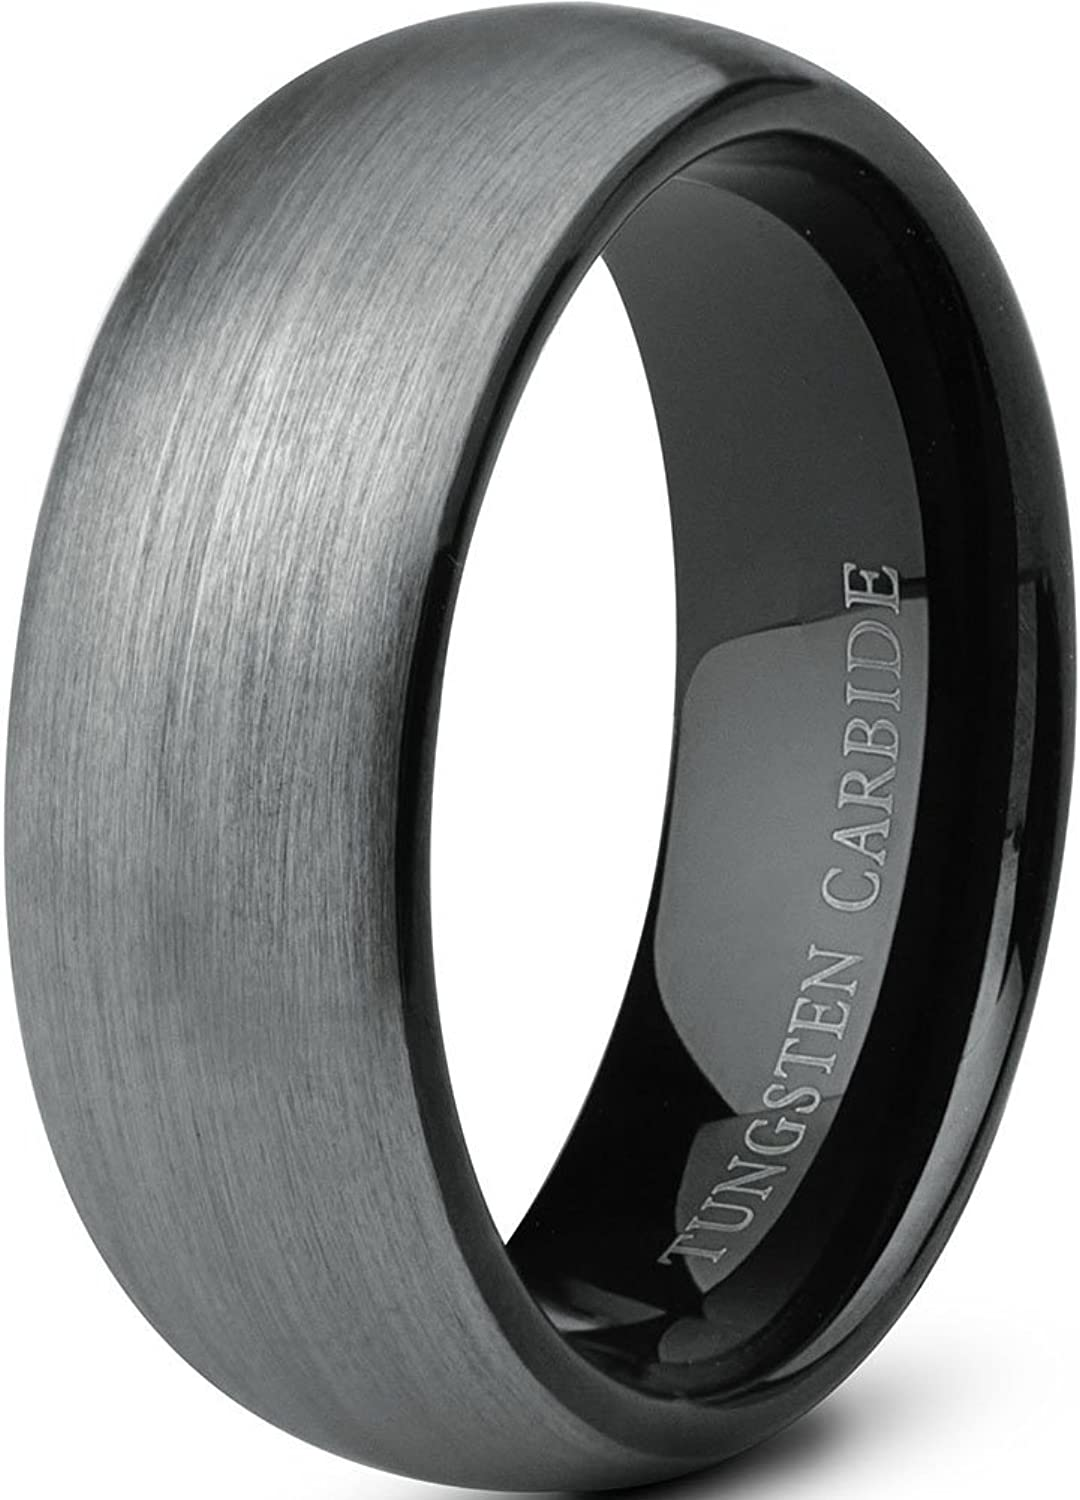 Tungary Jewelry Tungsten Rings for Men Wedding Band Black Ring 8mm